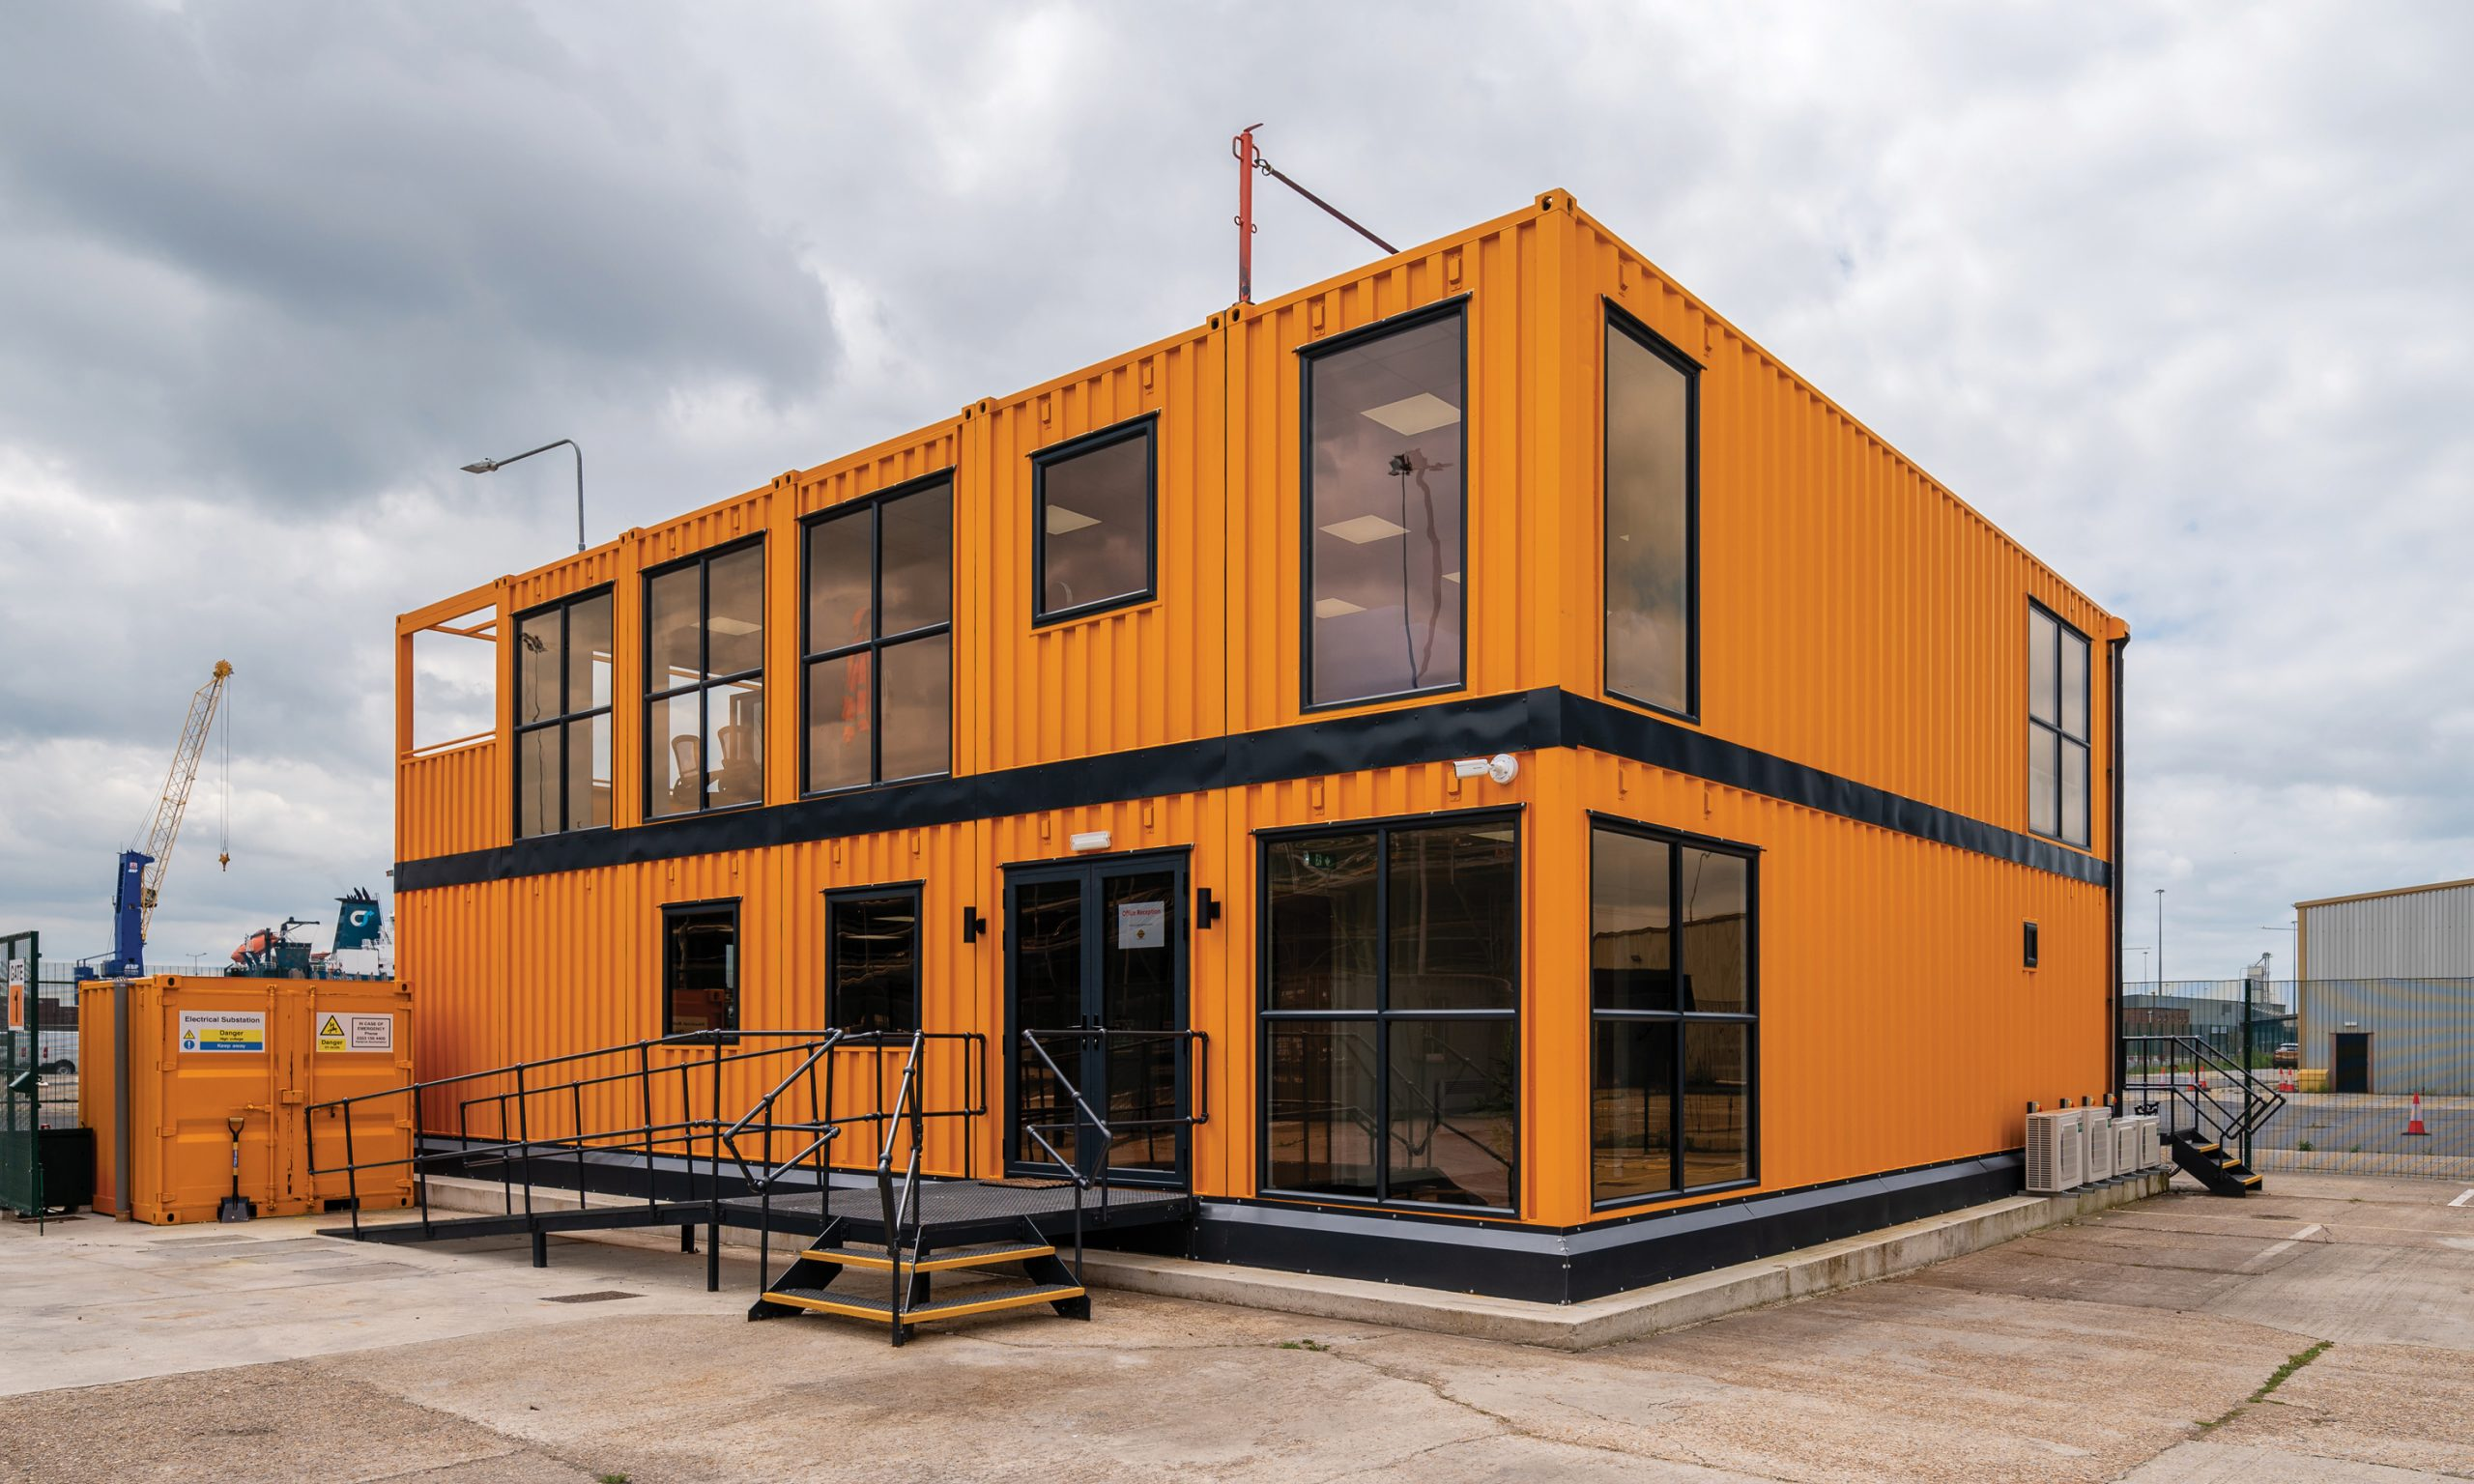 Our New Shipping Container Offices and Workshop